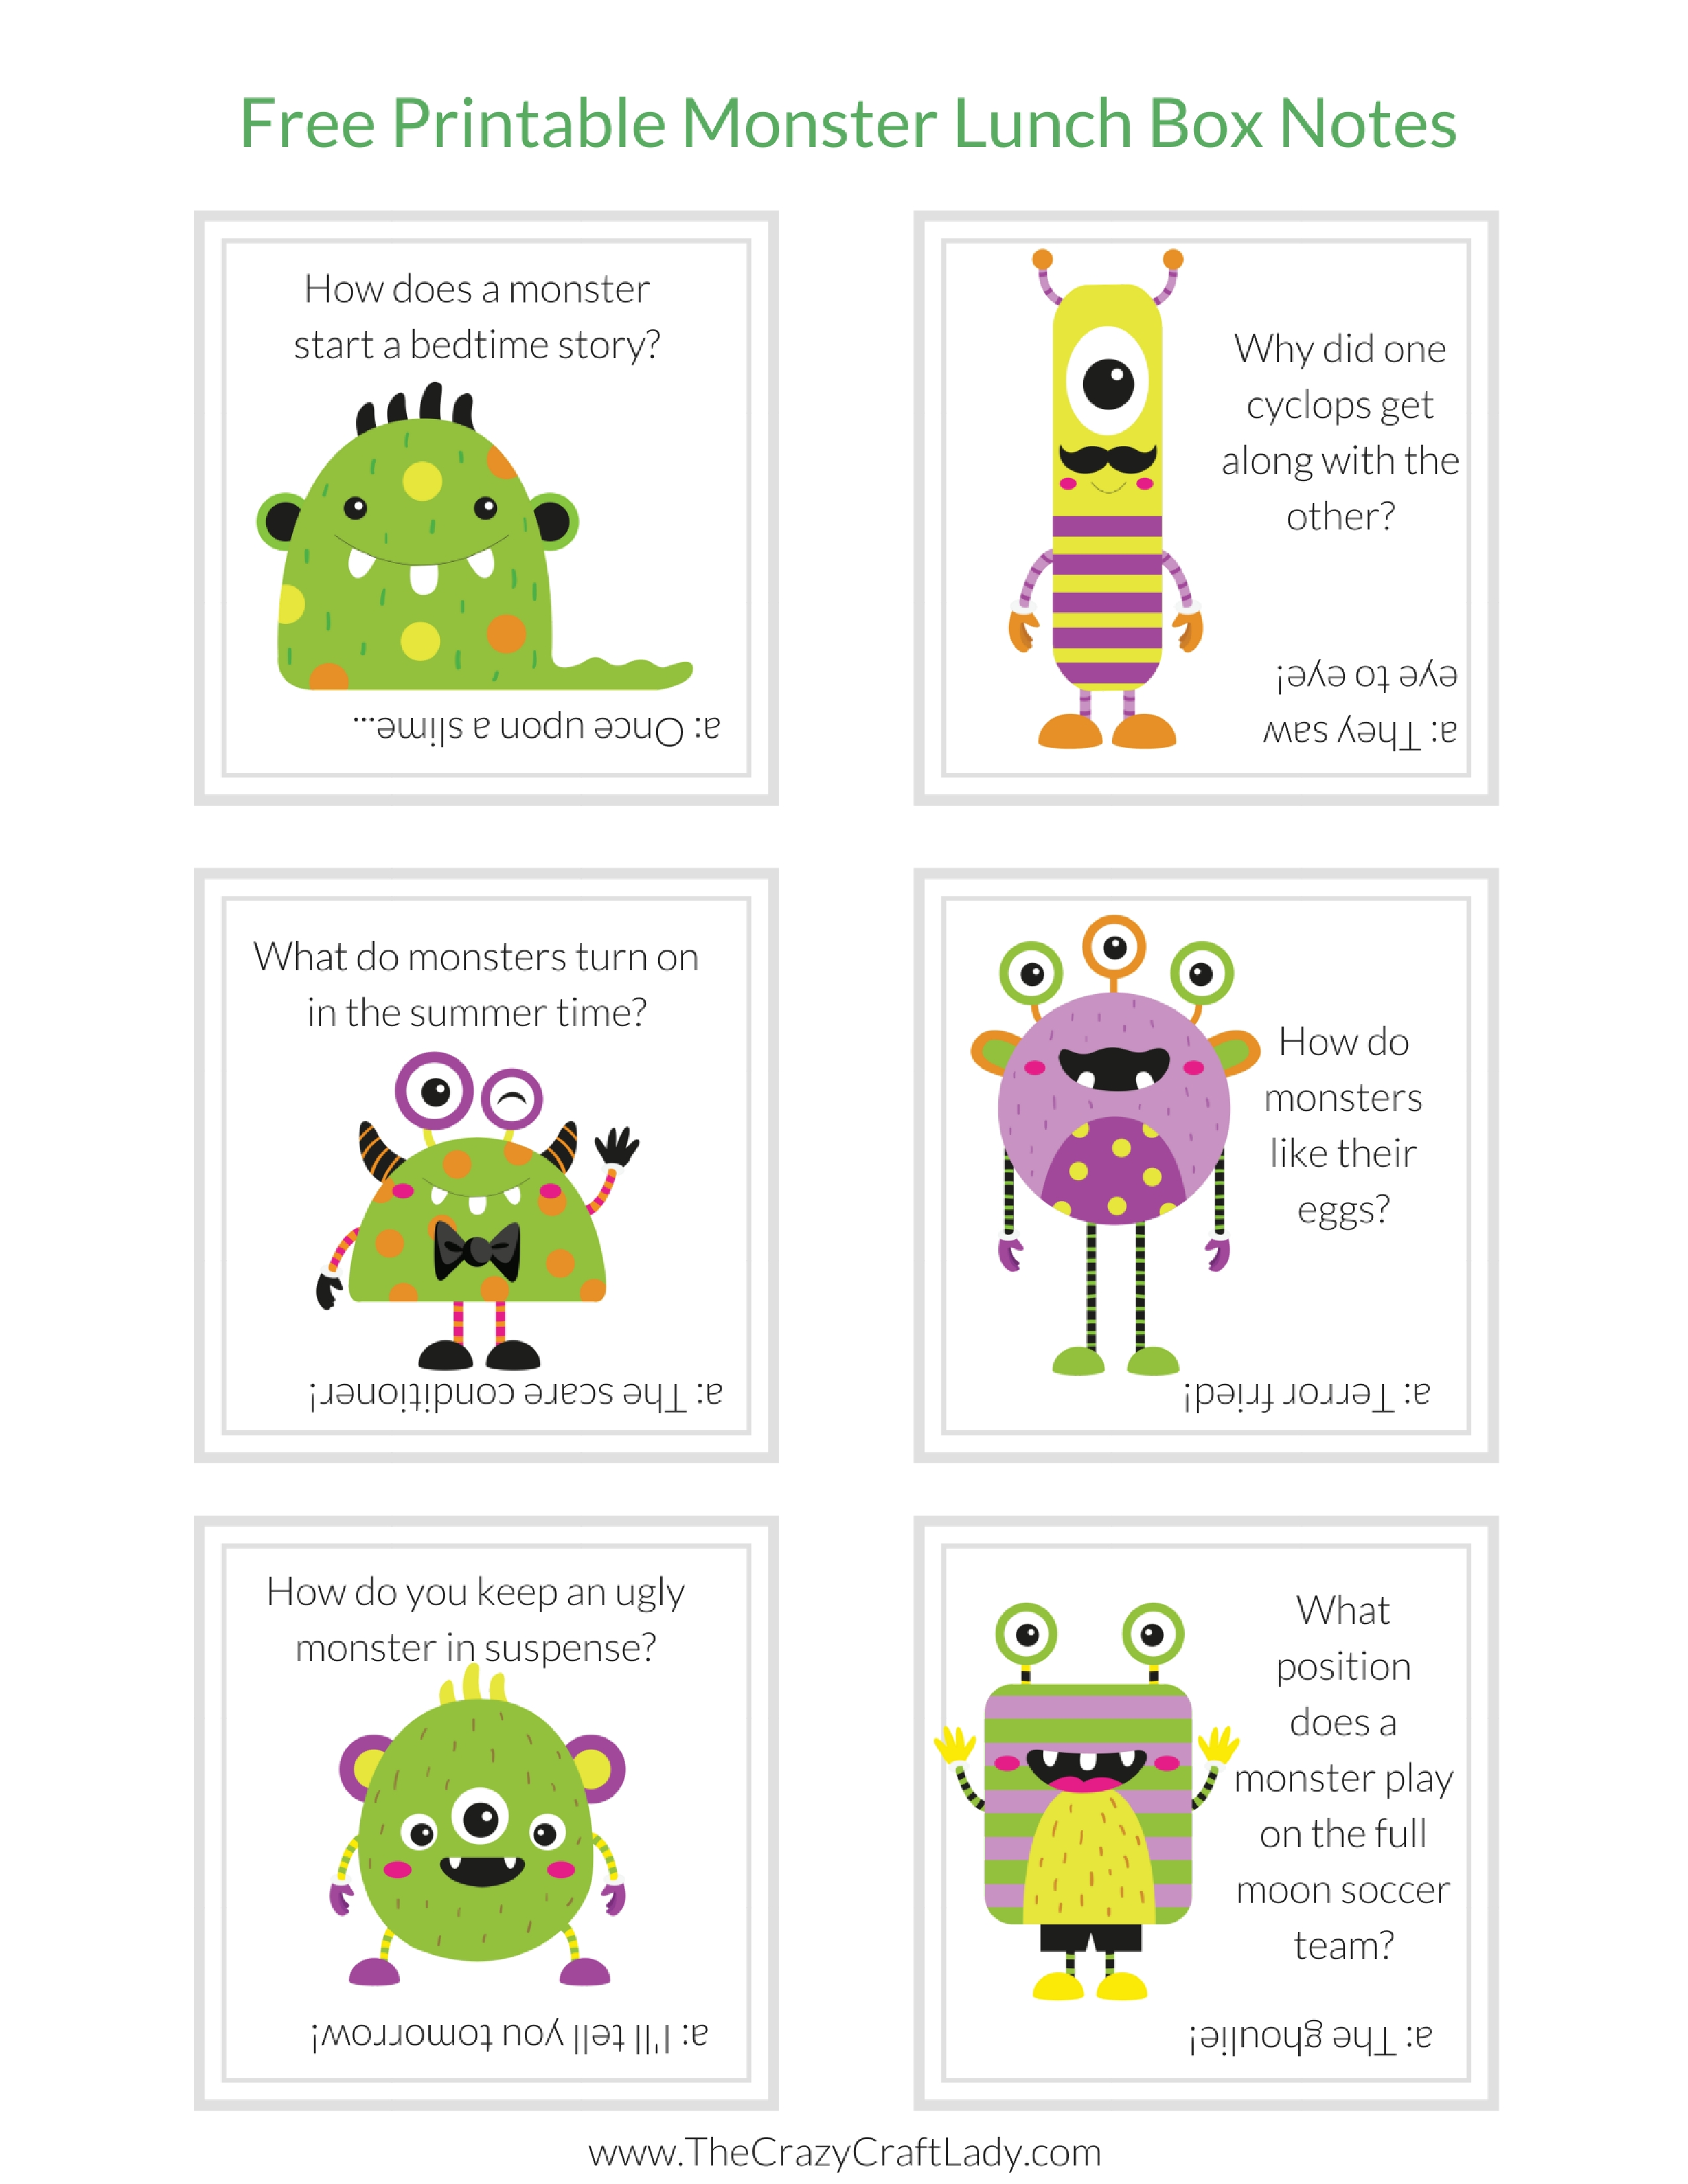 Free Printable Monster Lunch Box Notes